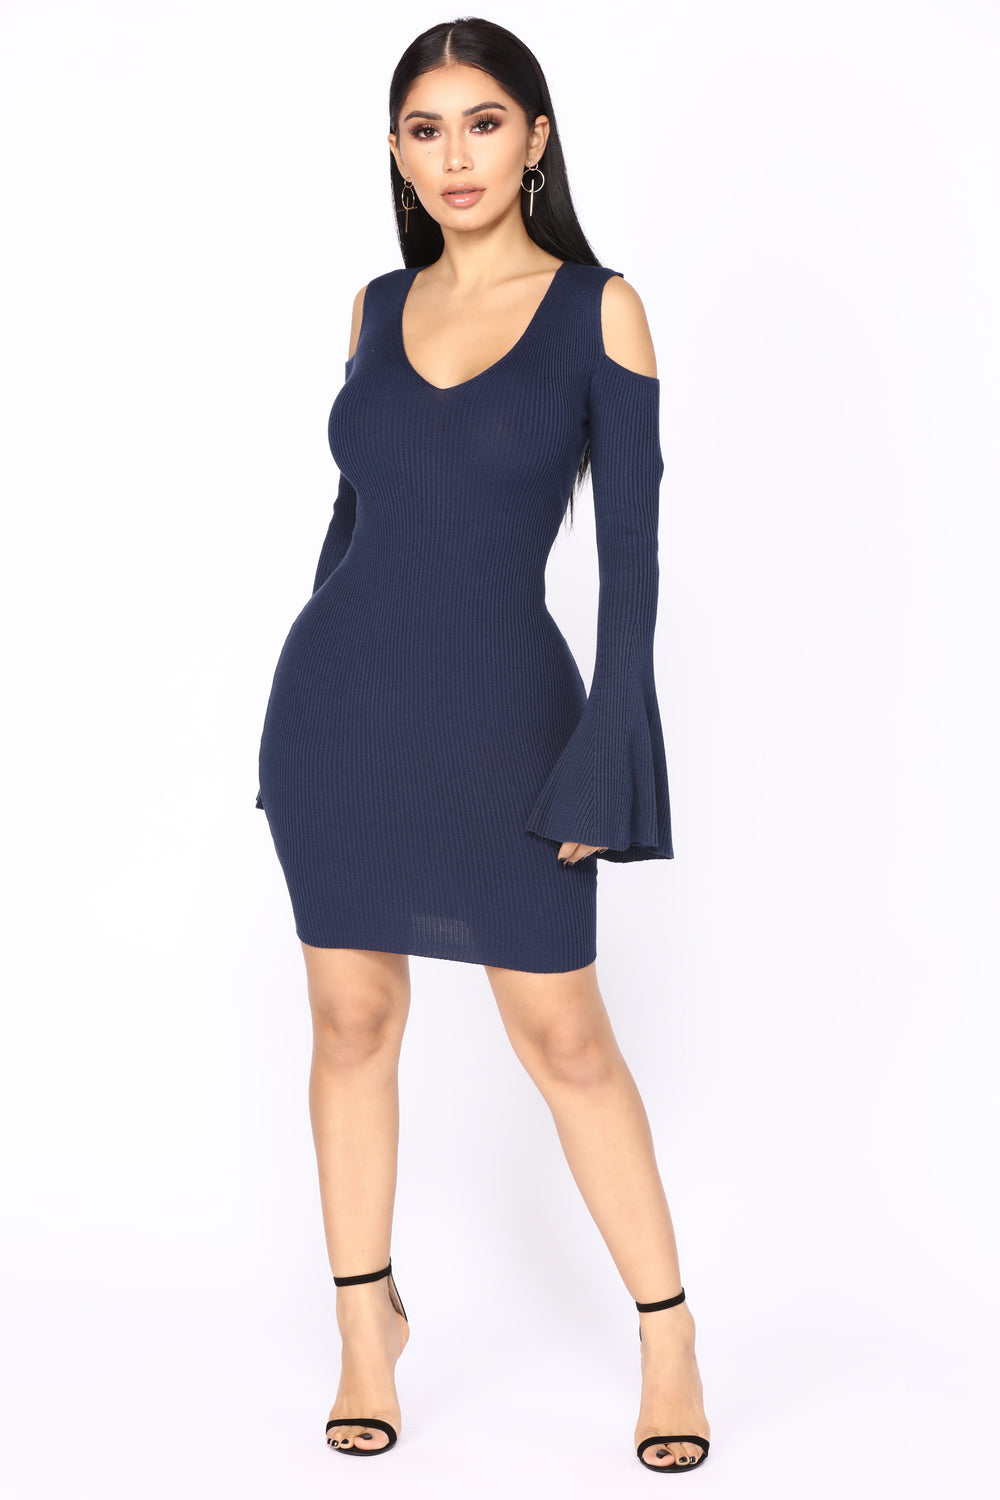 Cristal Knit Dress - Navy